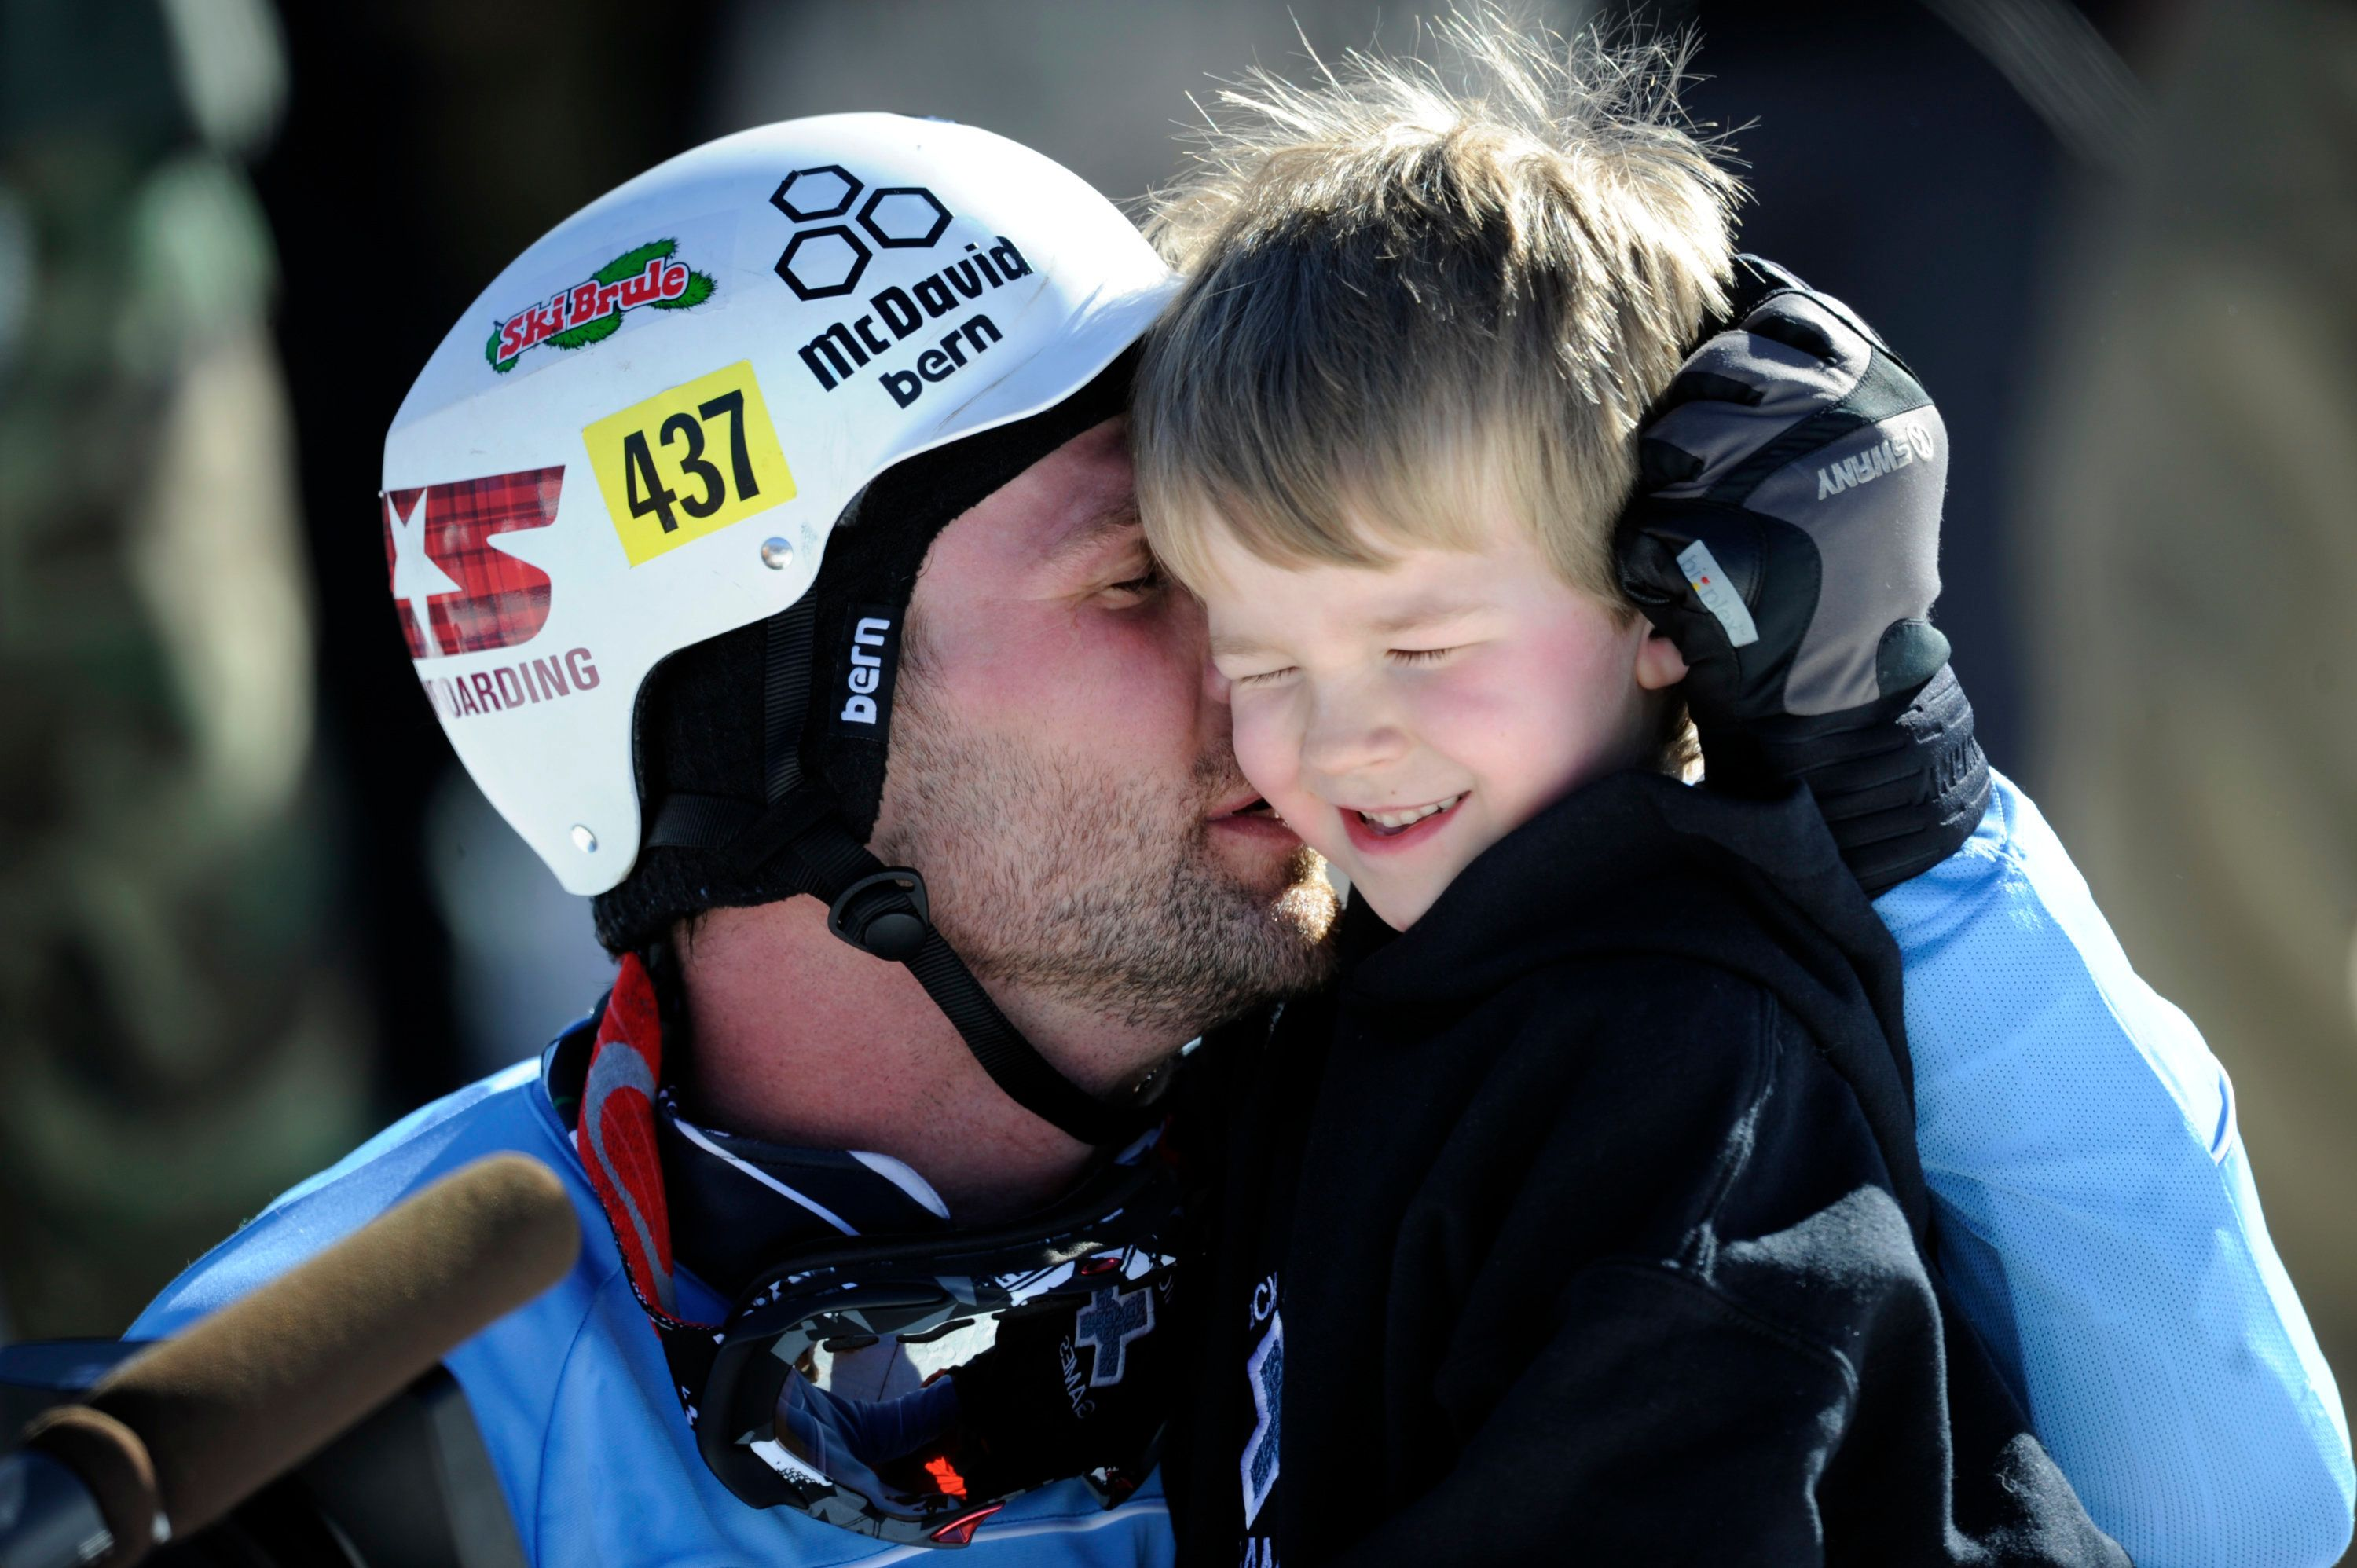 Nick Baumgartner hugs his son, Landon, 6, following his gold medal run in the men's Snowboarder X finals at the Winter X Games on Buttermilk Mountain on Saturday, January 29, 2011. Baumgartner's win was his first X Games medal and it ended Nate Holland's streak of five consecutive gold's in the event. AAron Ontiveroz, The Denver Post  (Photo By AAron Ontiveroz/The Denver Post via Getty Images)